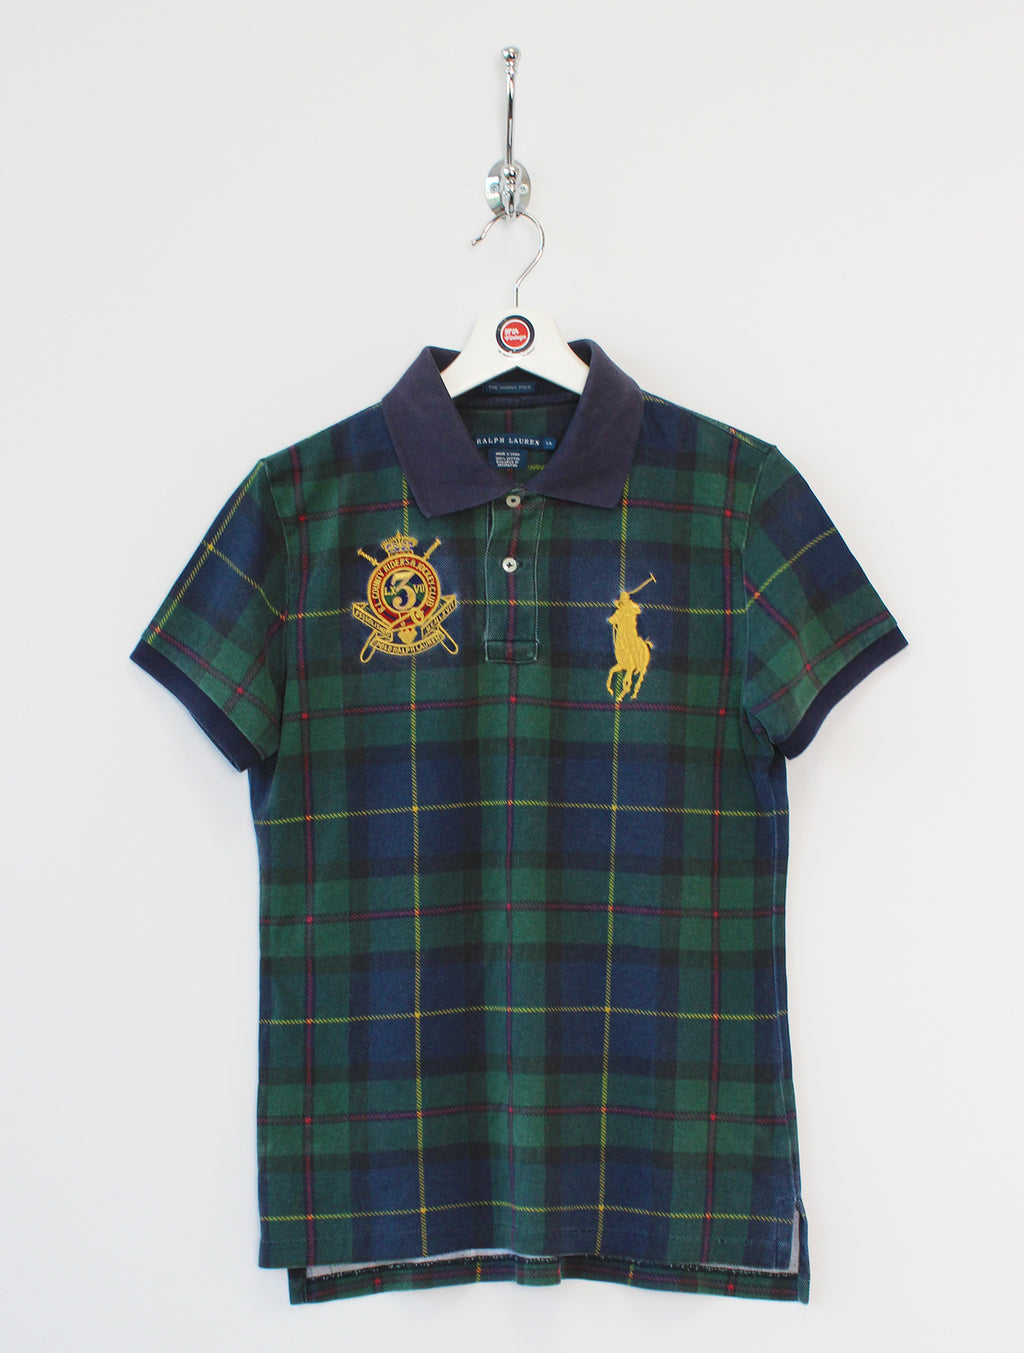 Women's Ralph Lauren Polo Shirt (M)